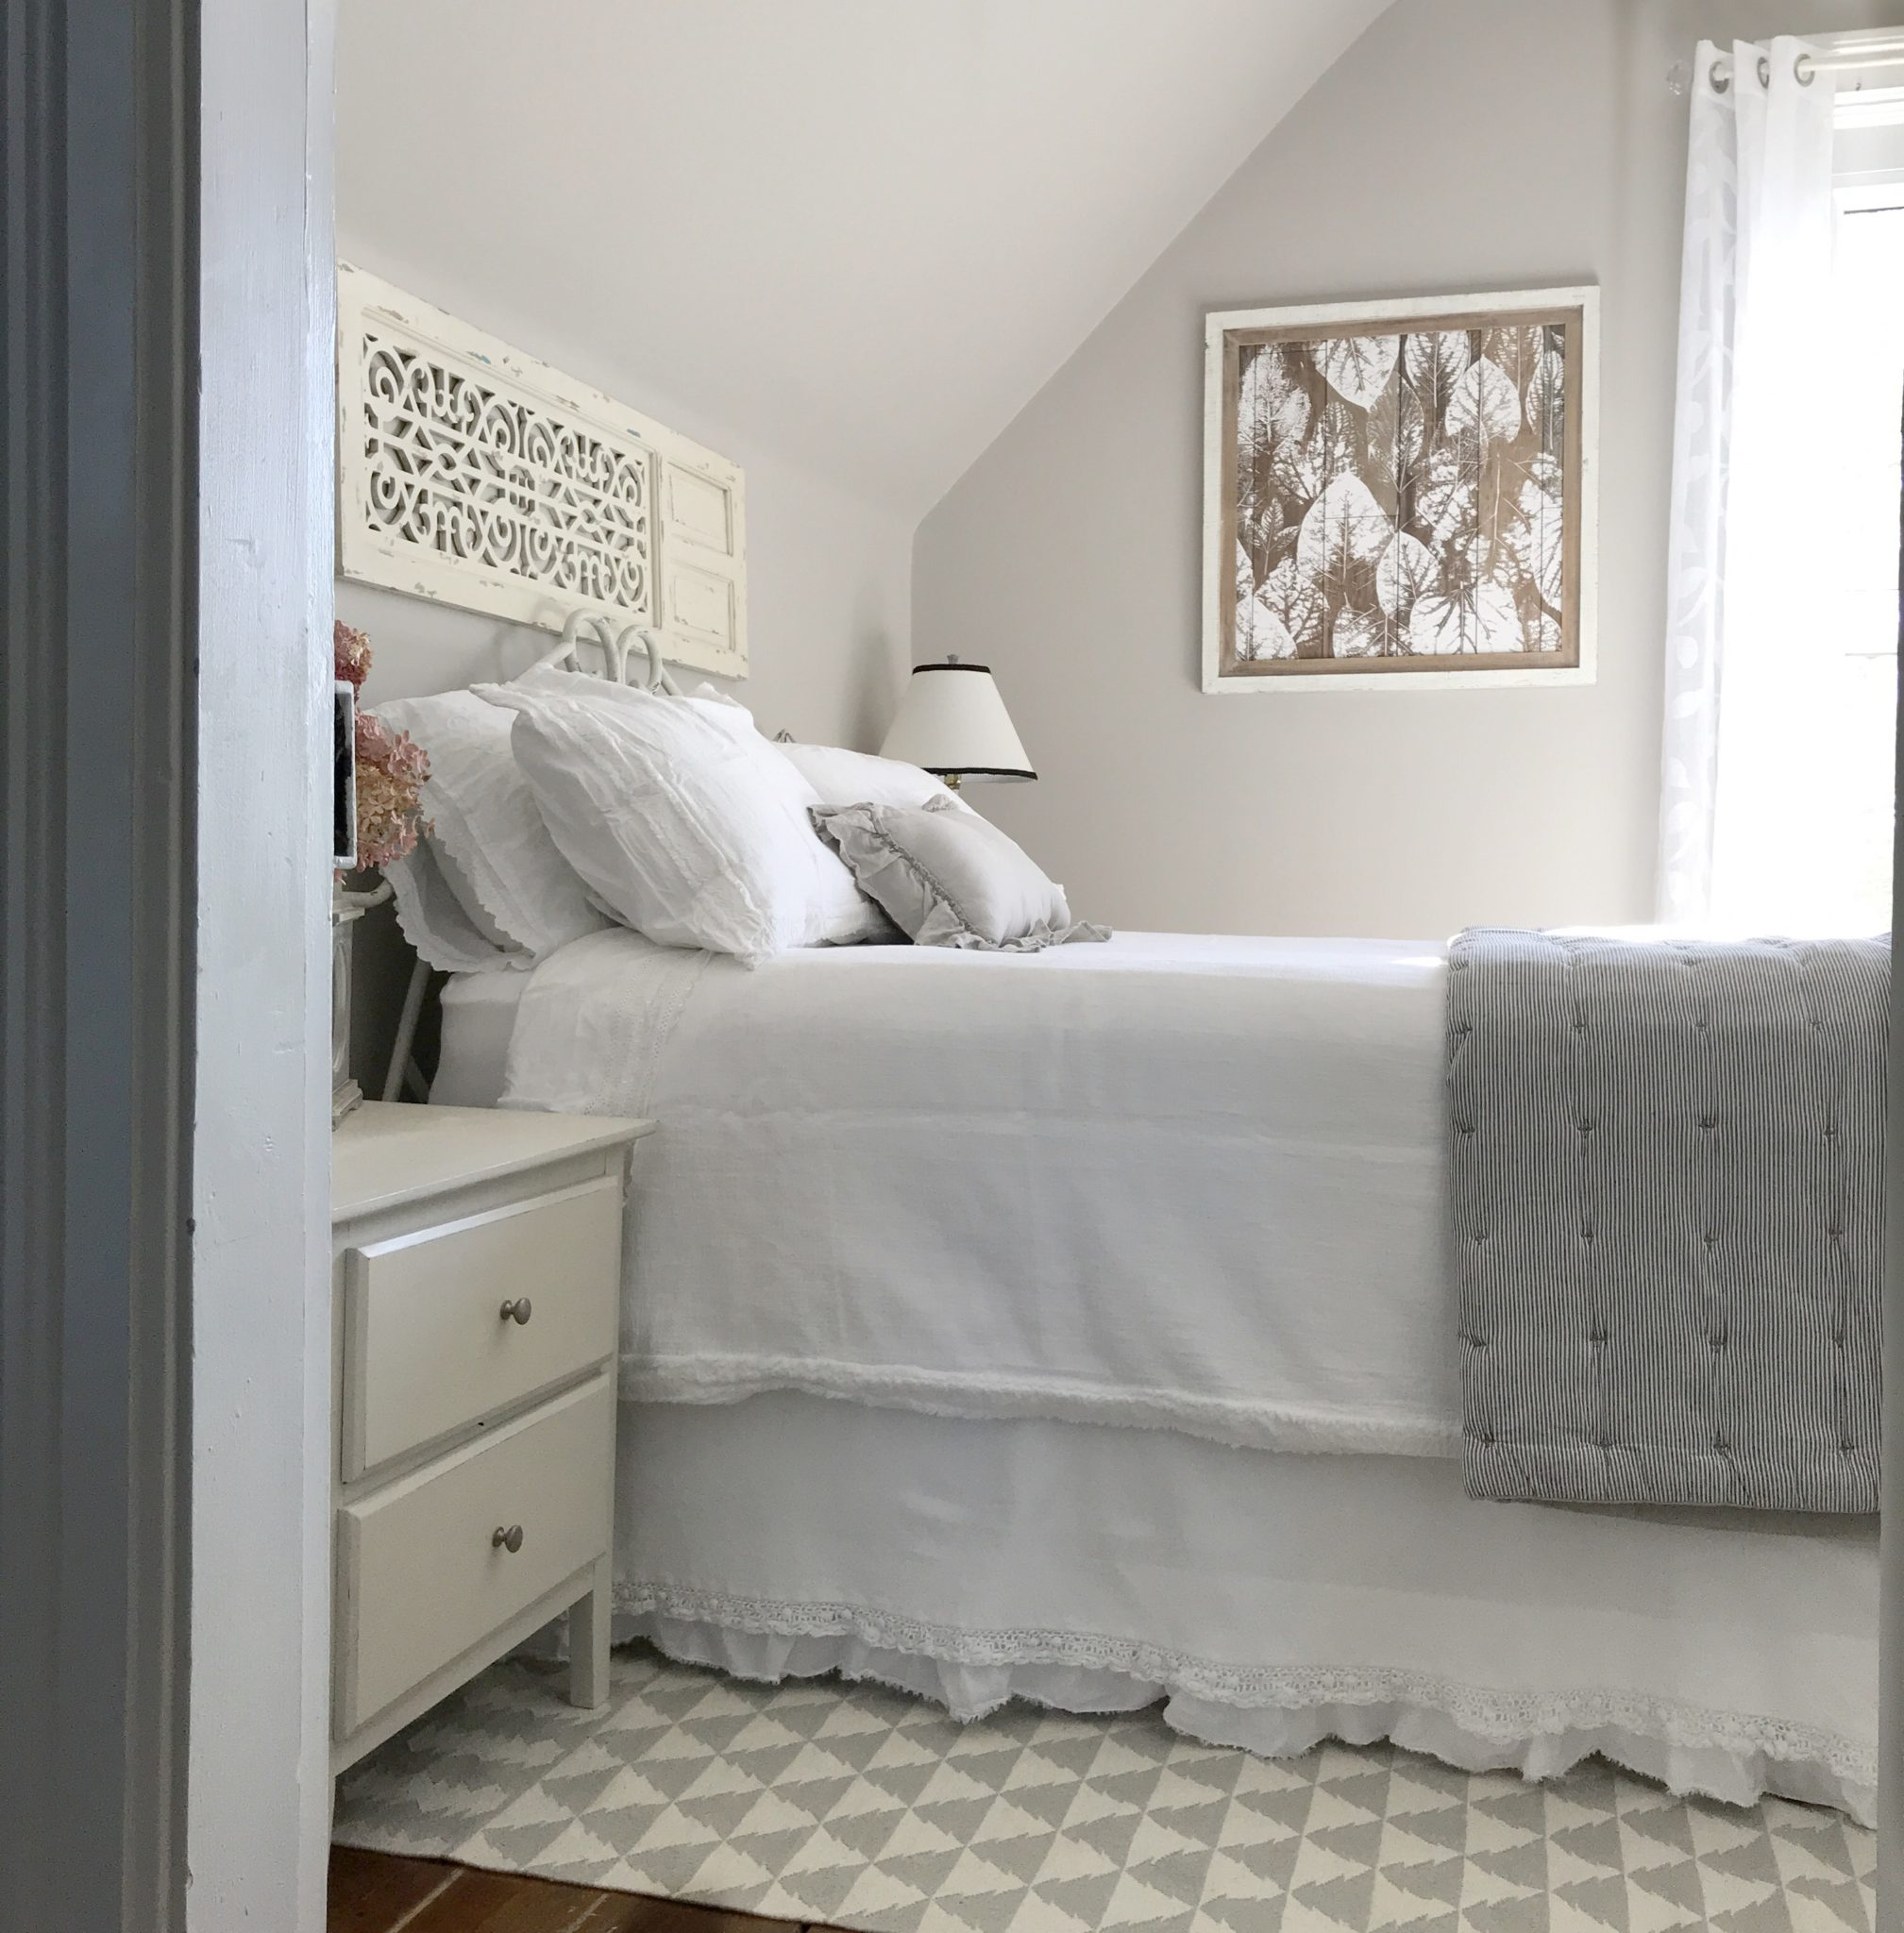 Bon My Guest Room Makeover Started Simply Enough. I Wanted To Create A Space  With A Farmhouse Feel For Family To Stay In When They Visited.